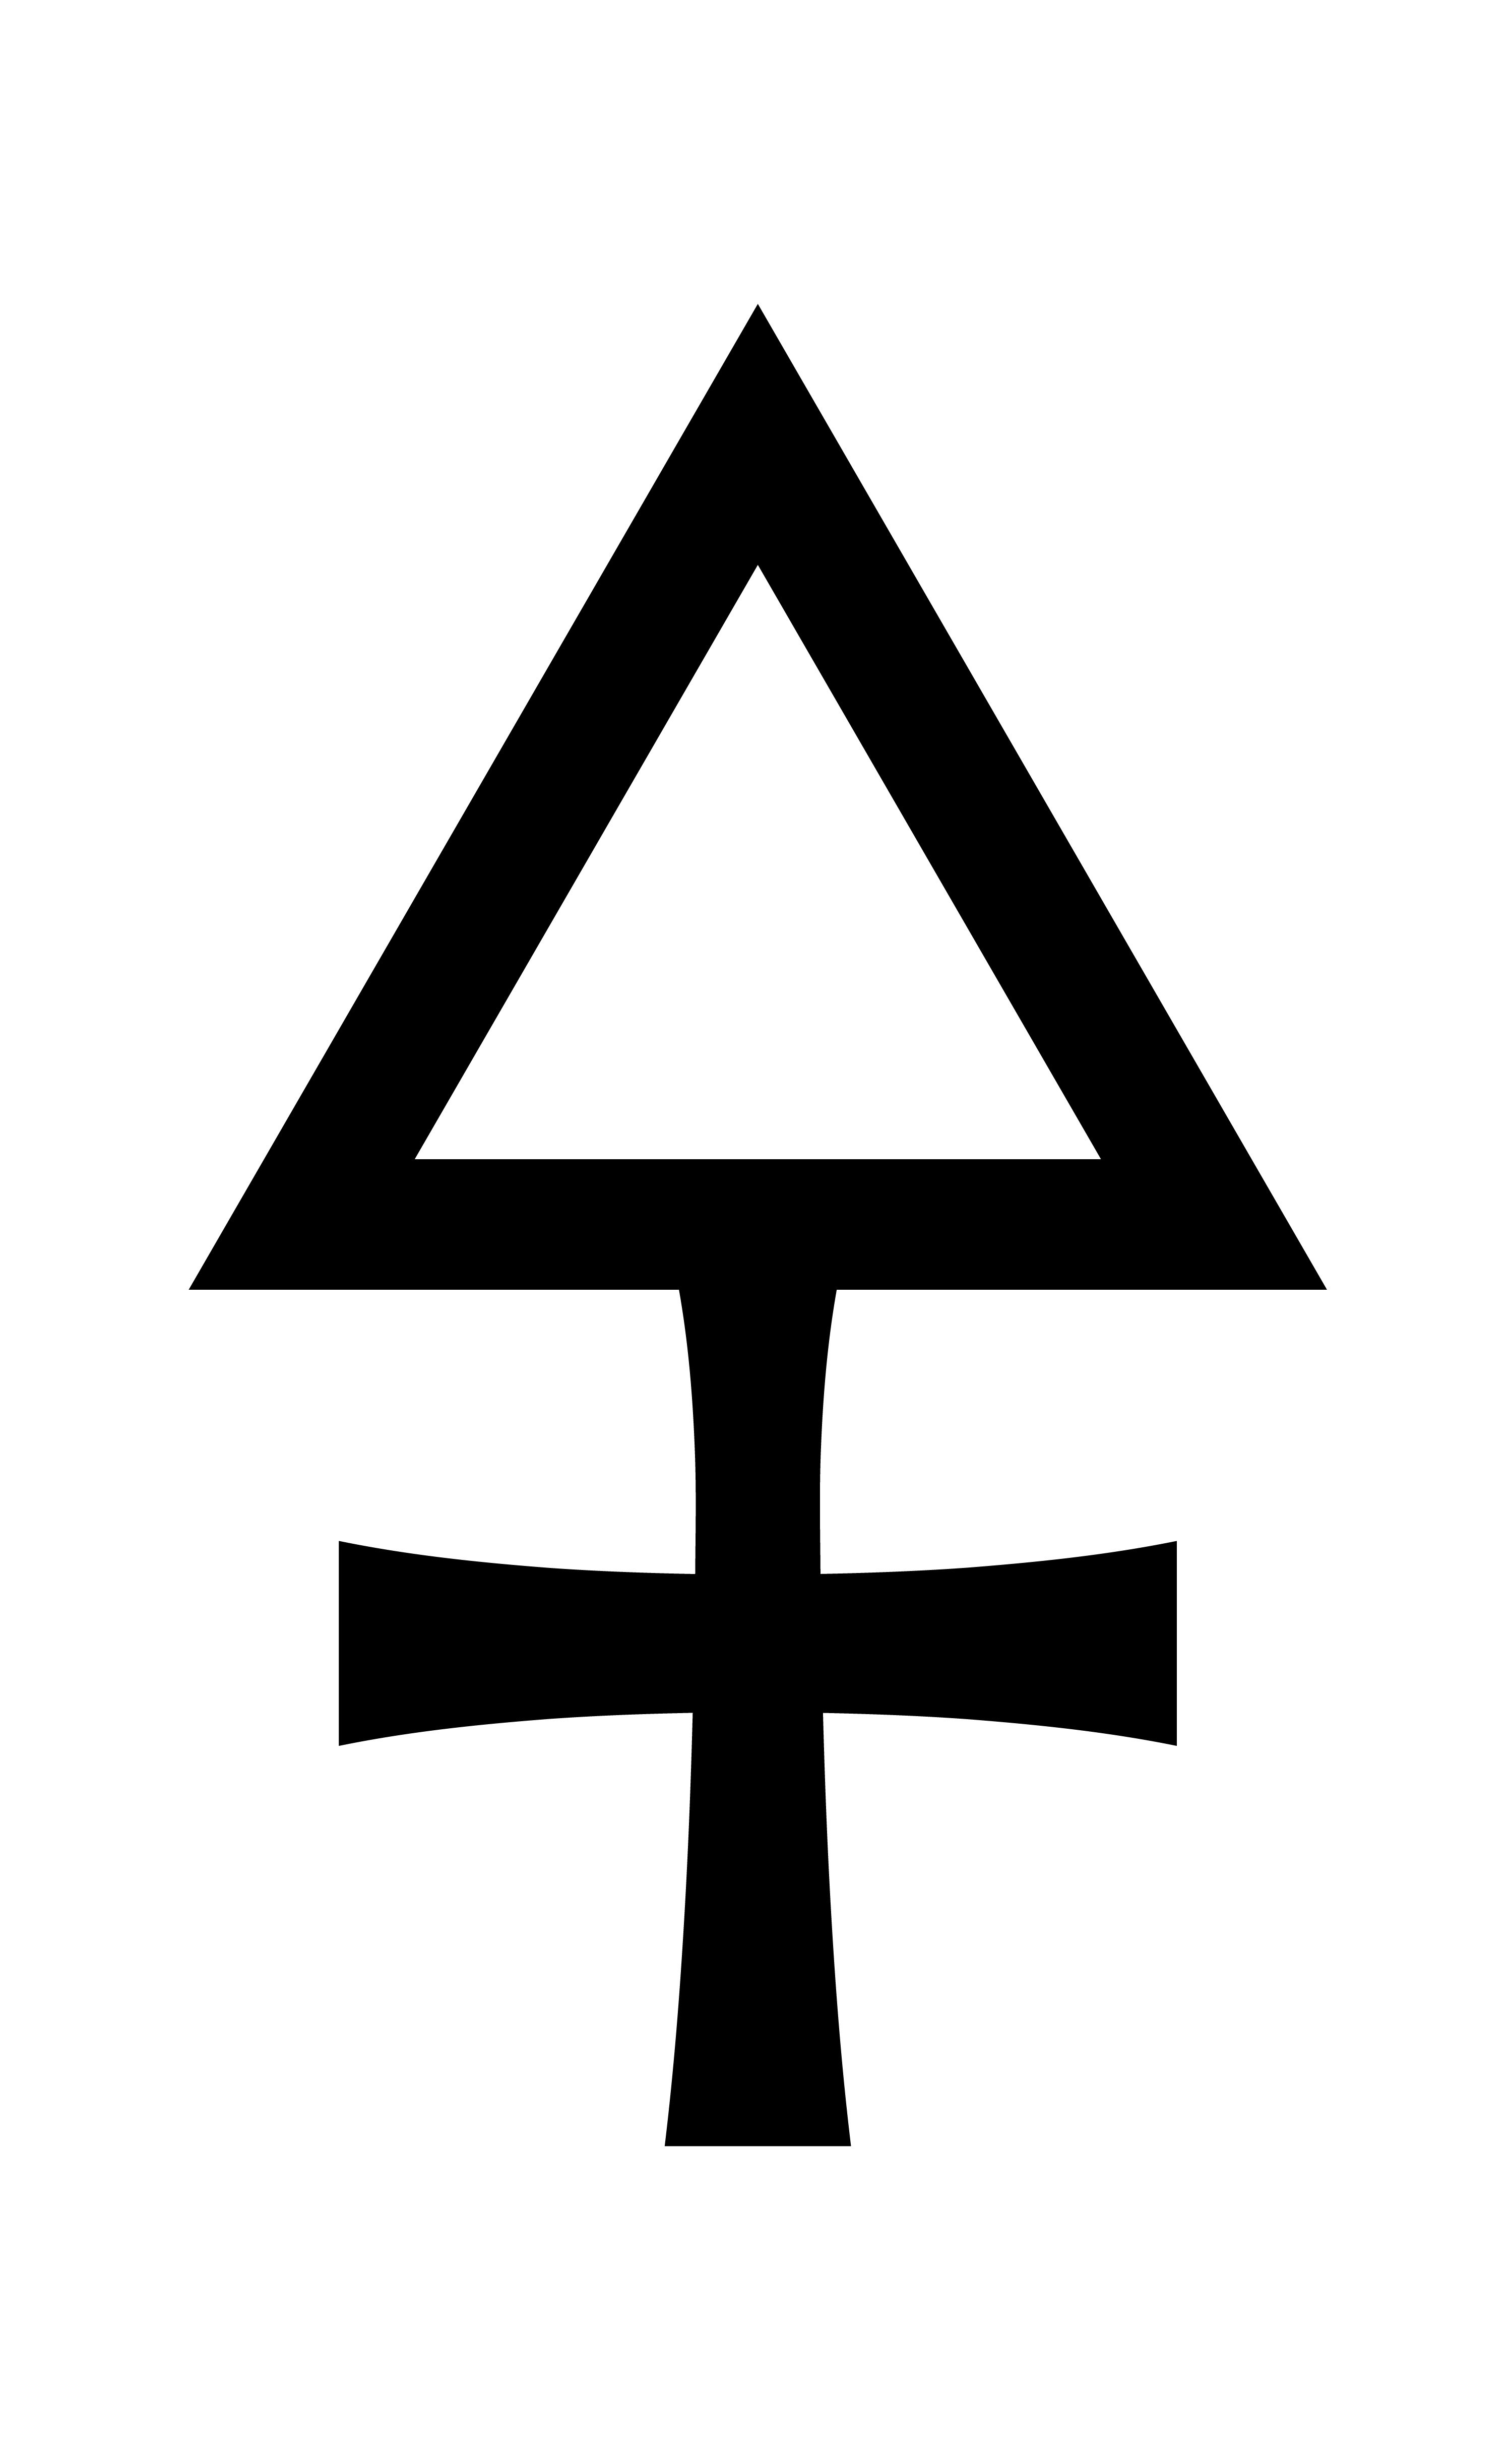 Alchemy Symbols and Their Meanings - The Extended List of ...Symbols